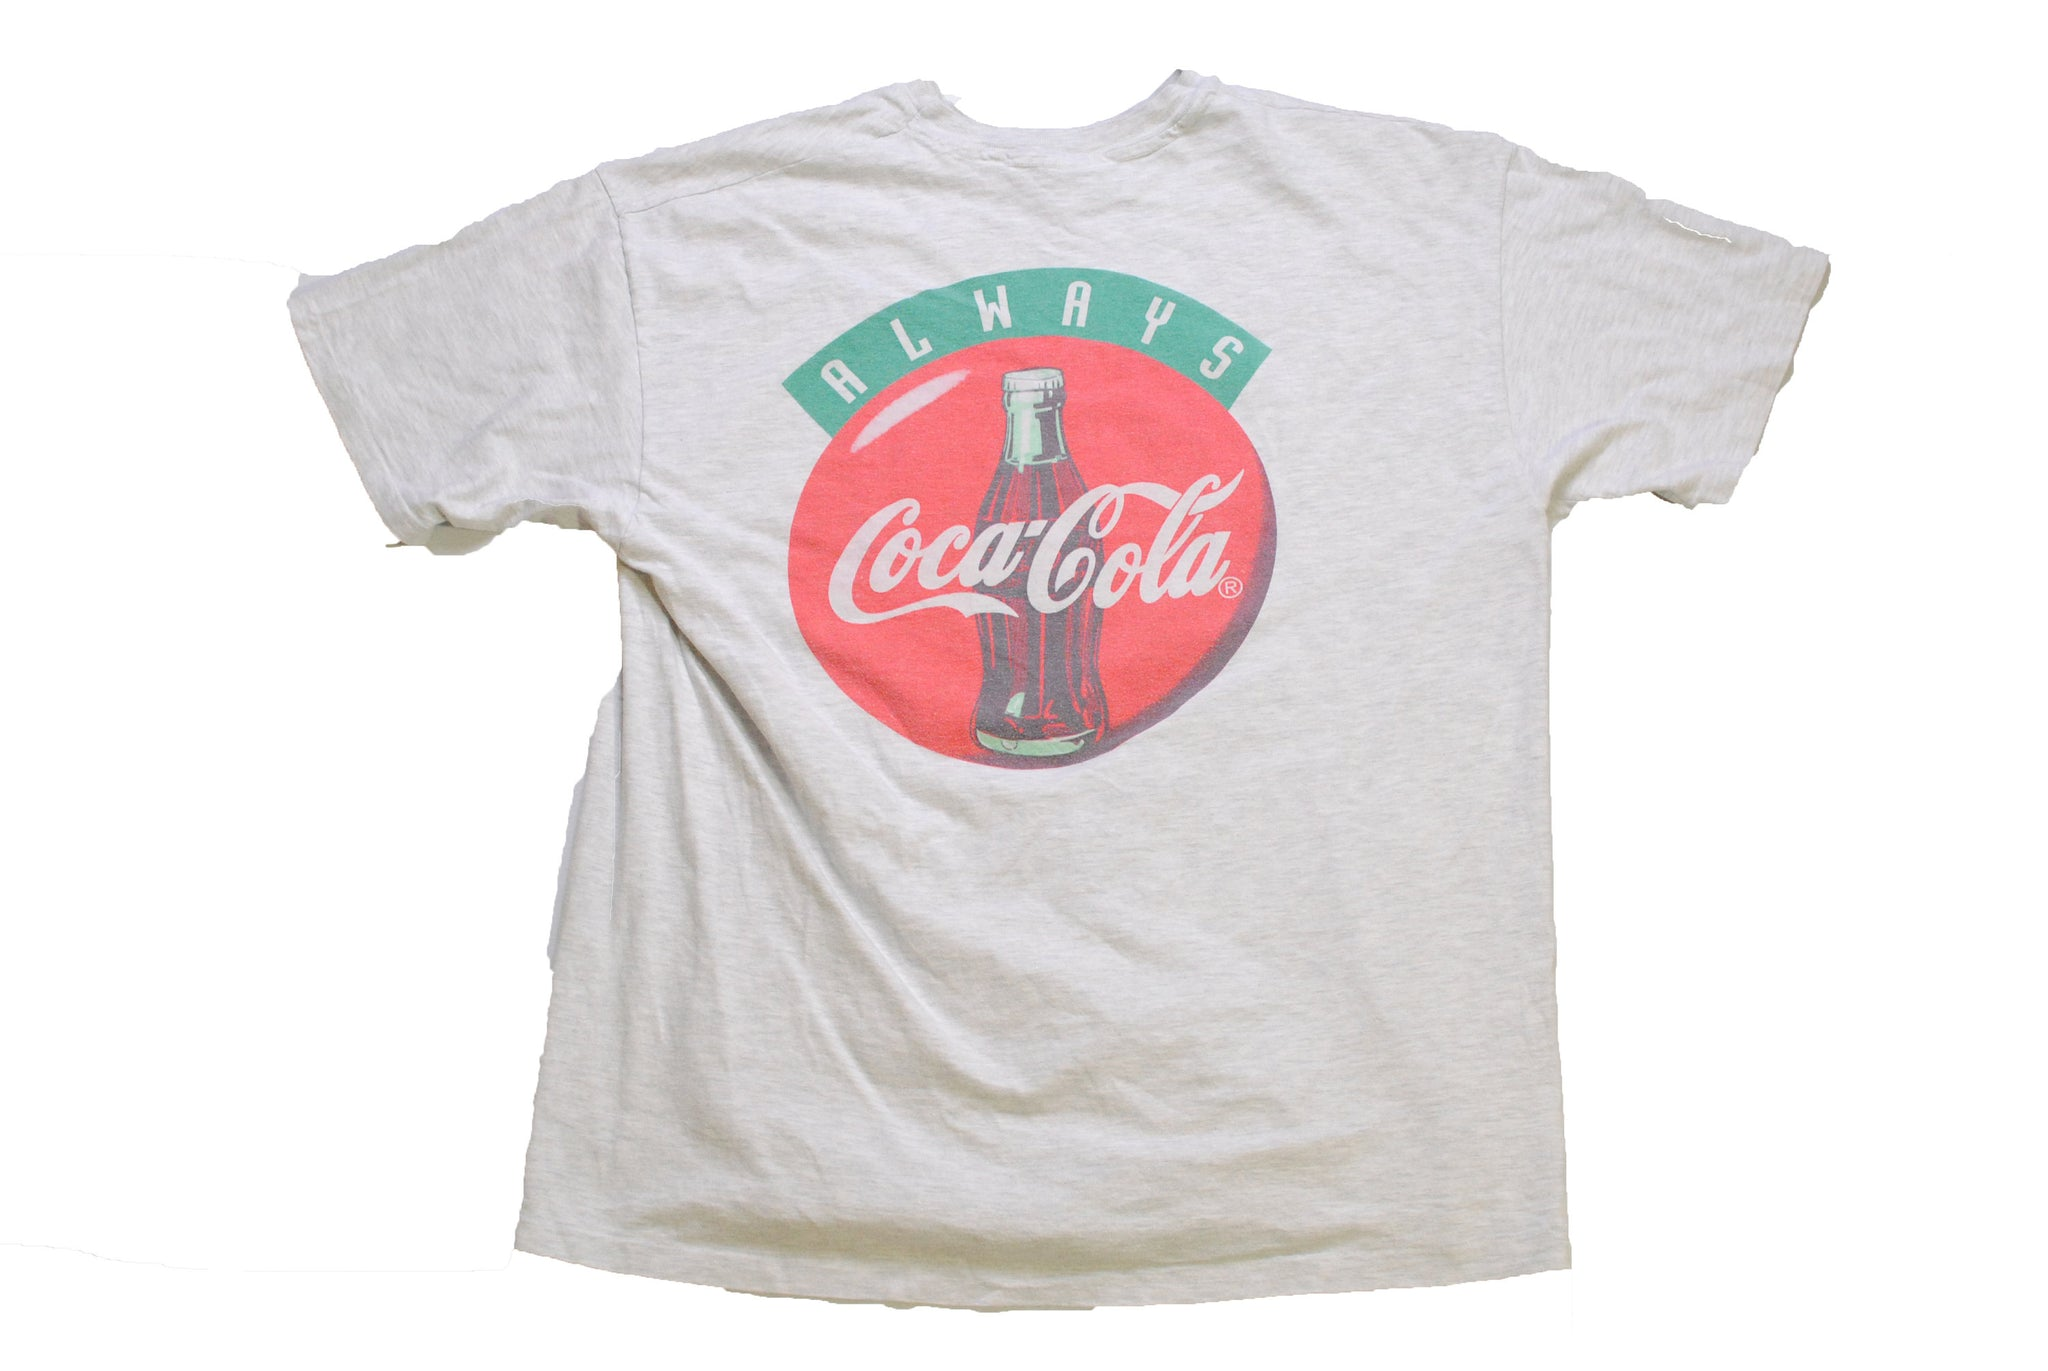 vintage COCA-COLA Europa Park authentic t-shirt Size XL collection retro sport gray big logo coca cola bottle always t shirt tee top 90s 80s